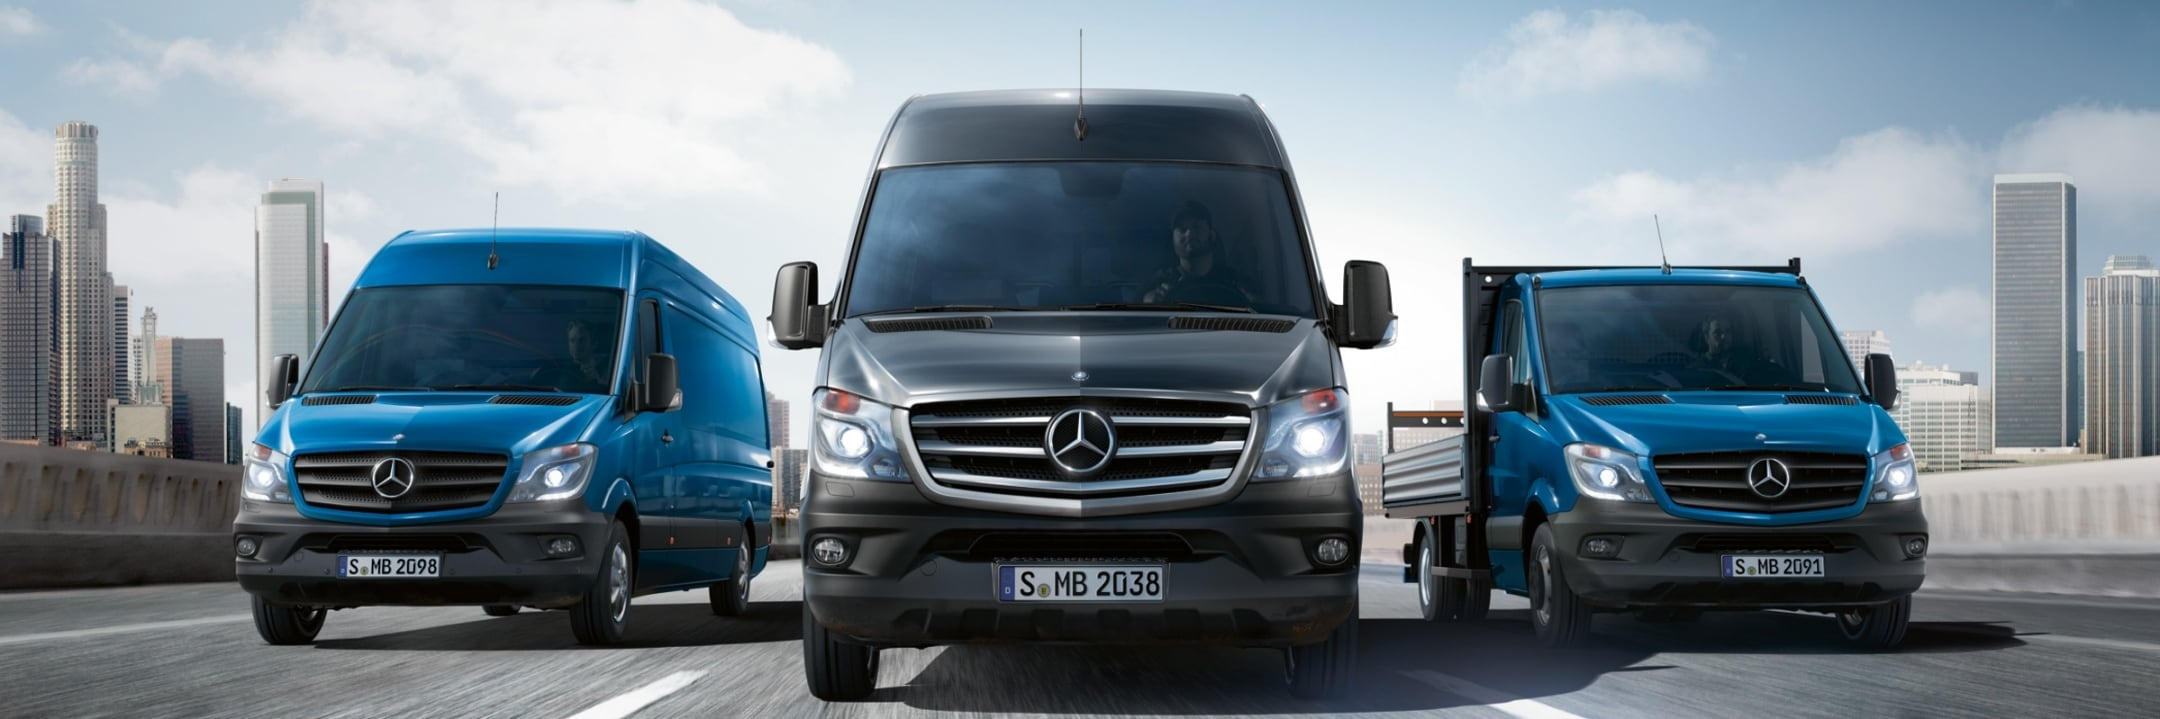 Mercedes-Benz, Vans, fleet solutions, Industry solutions